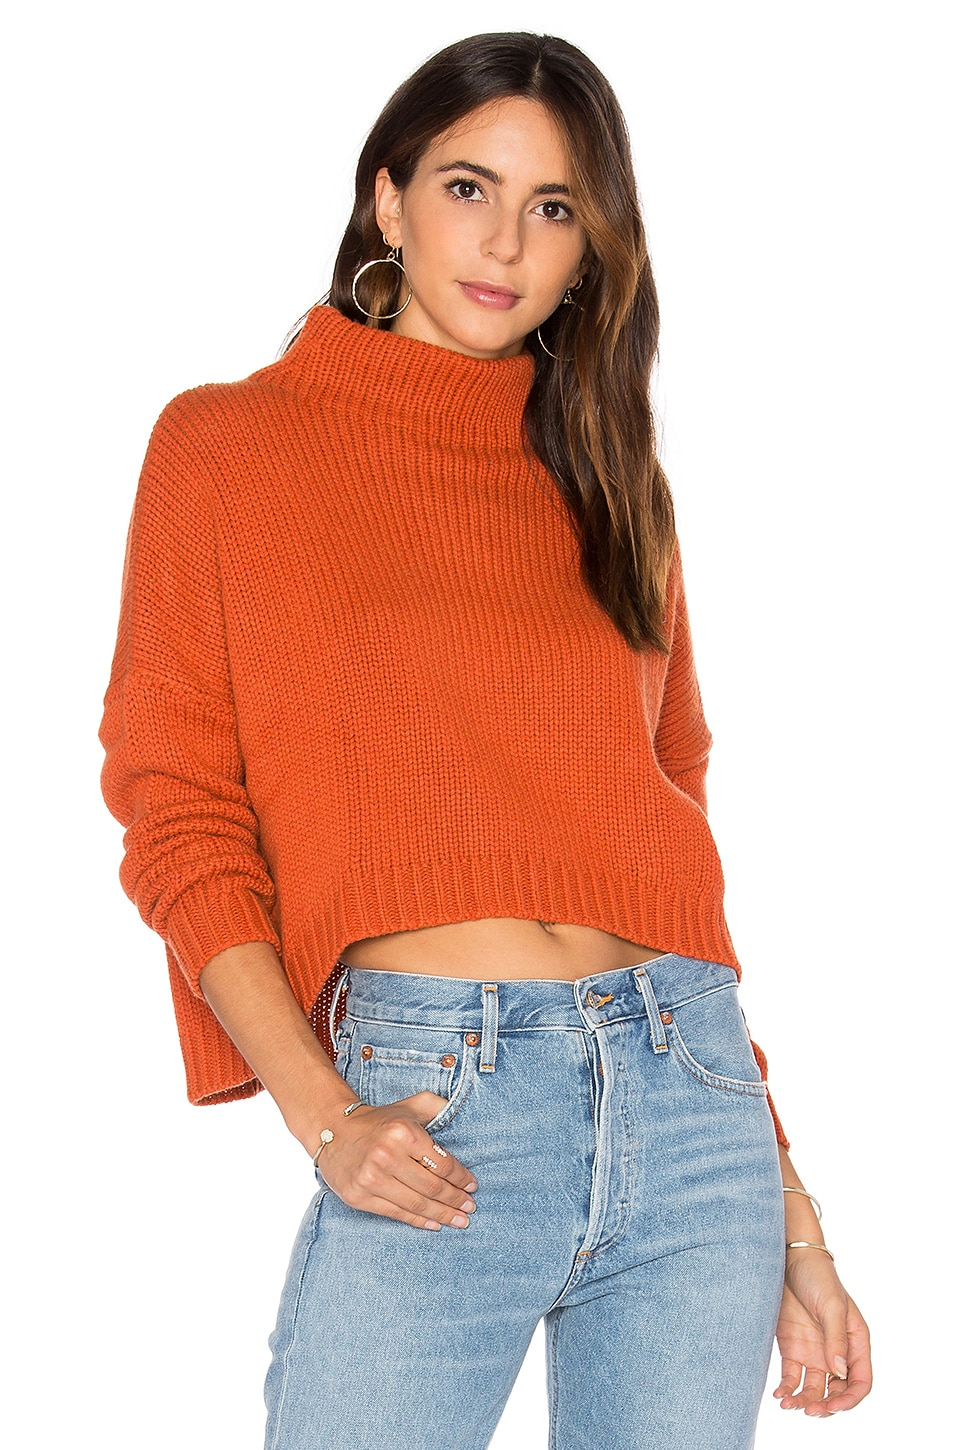 Autumn Cashmere Funnel Neck Sweater in Henna